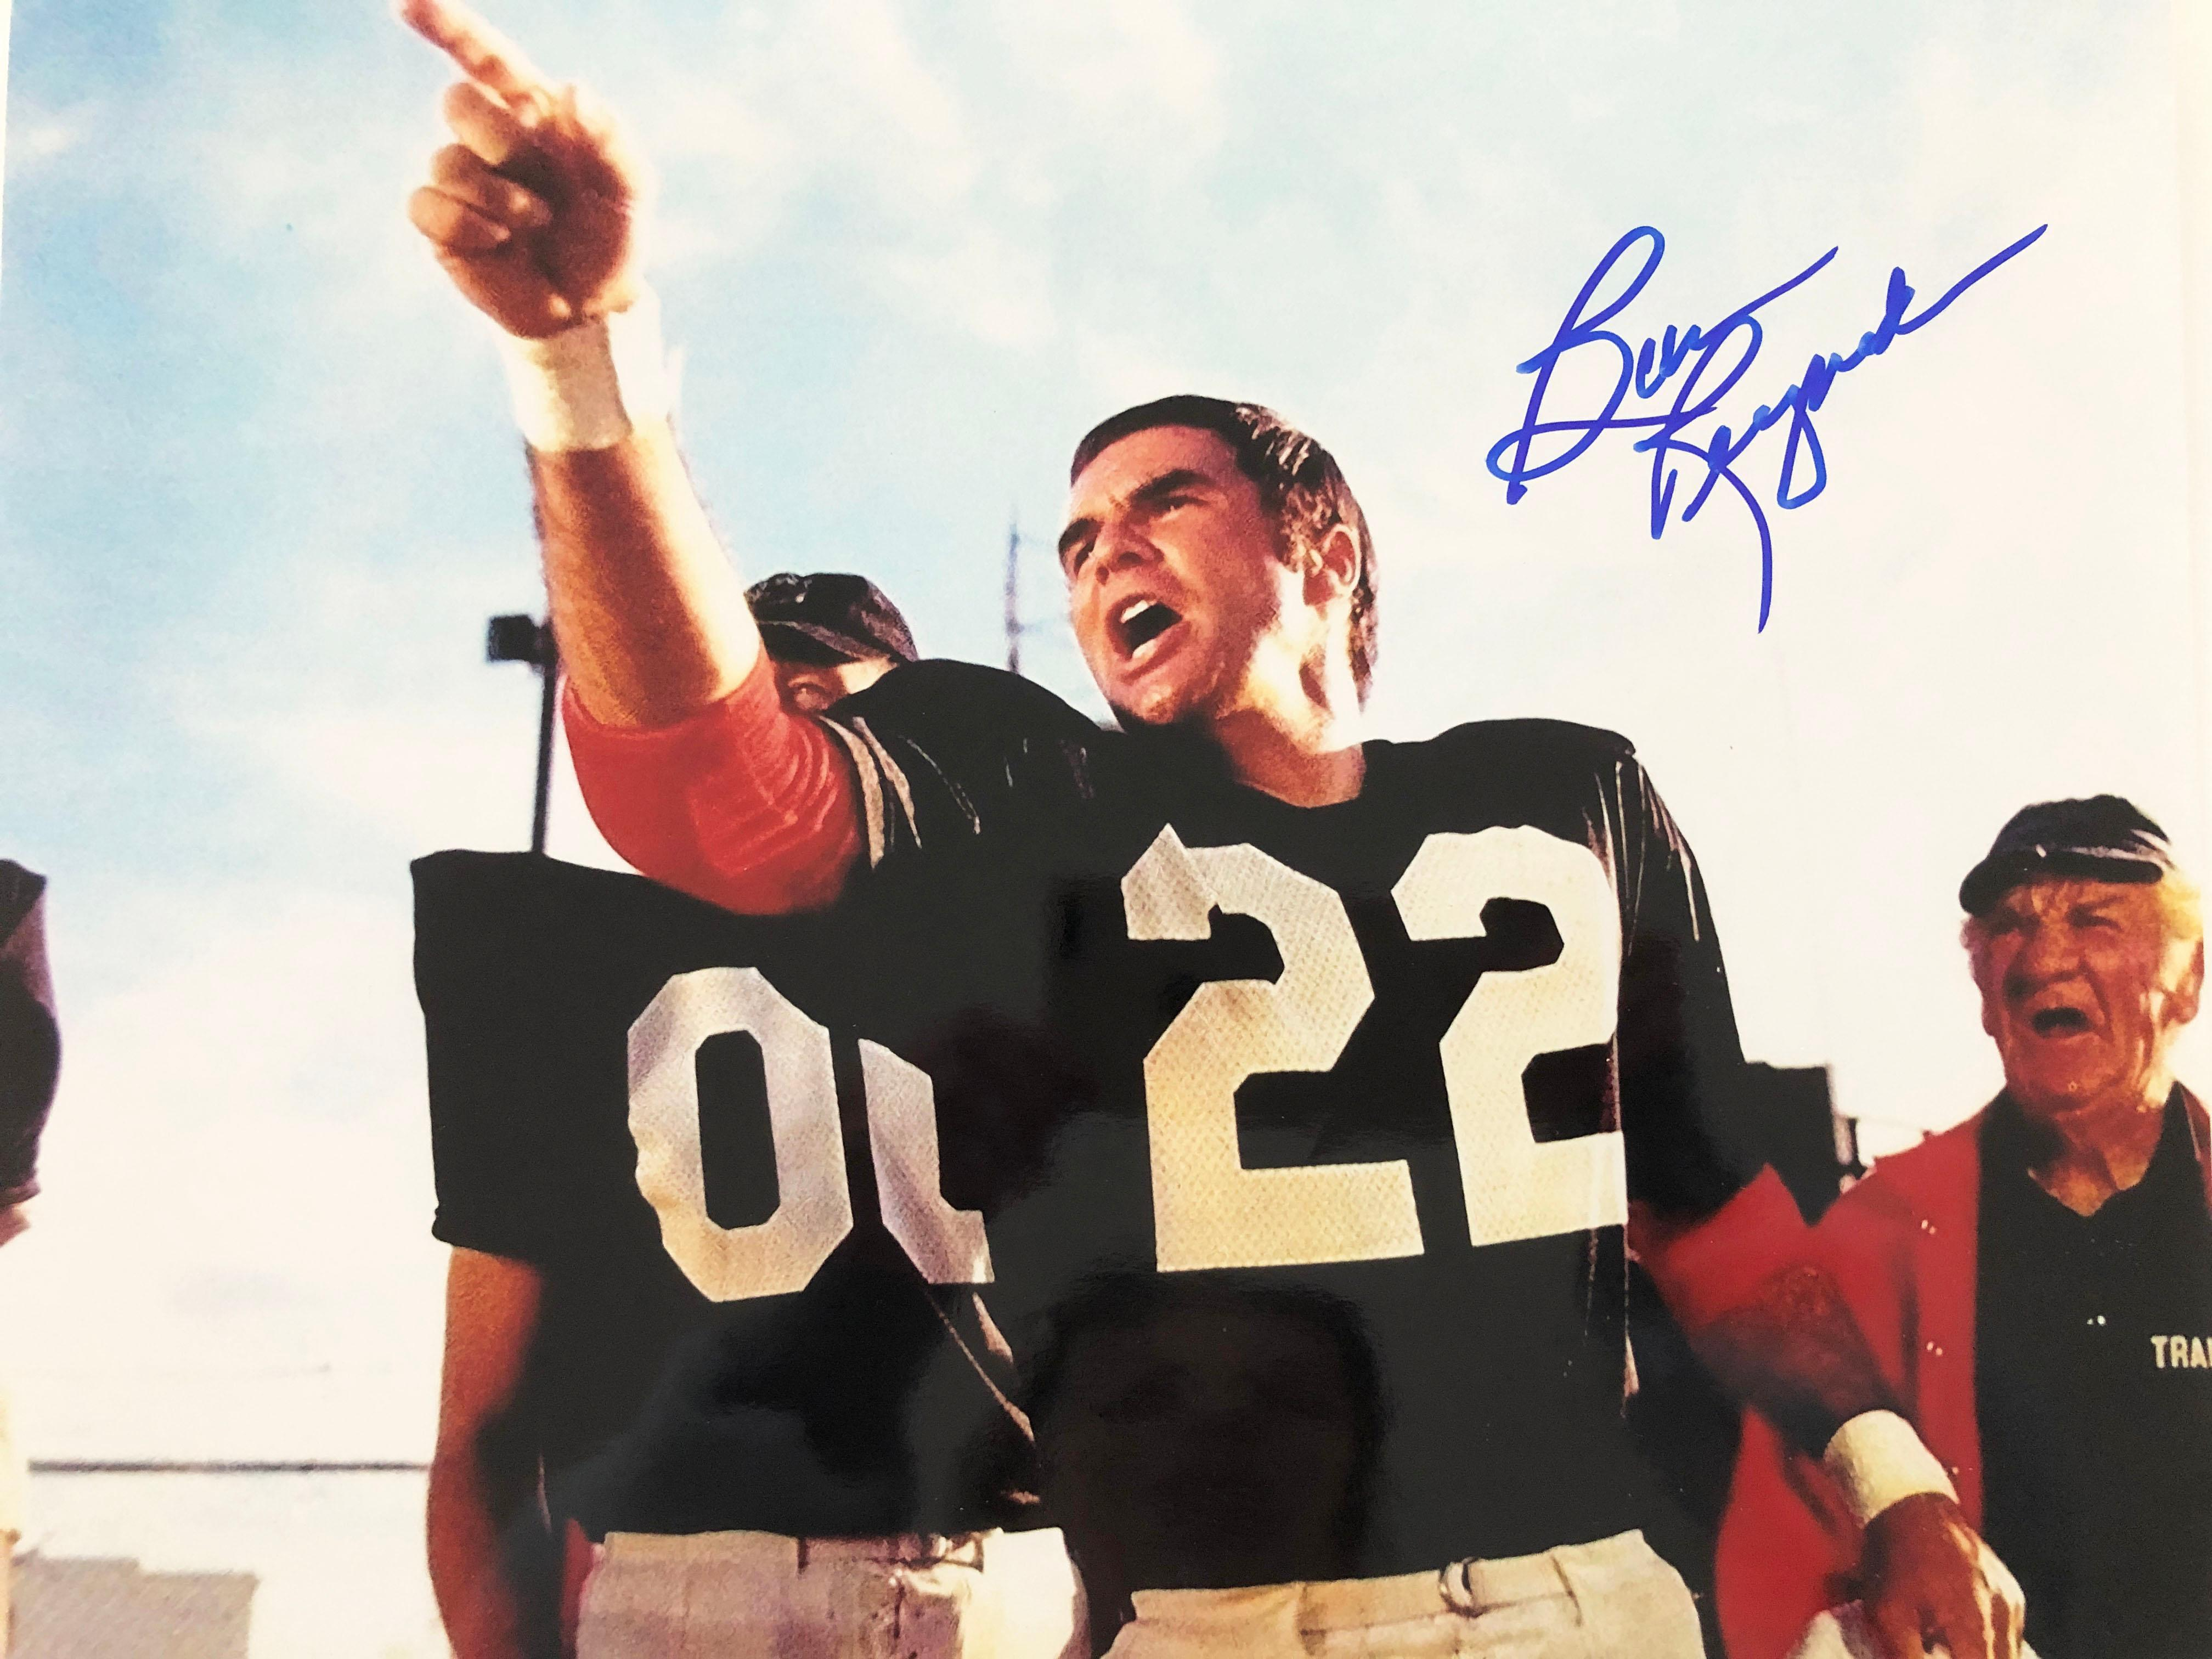 The Longest Yard Burt Reynolds signed movie photo